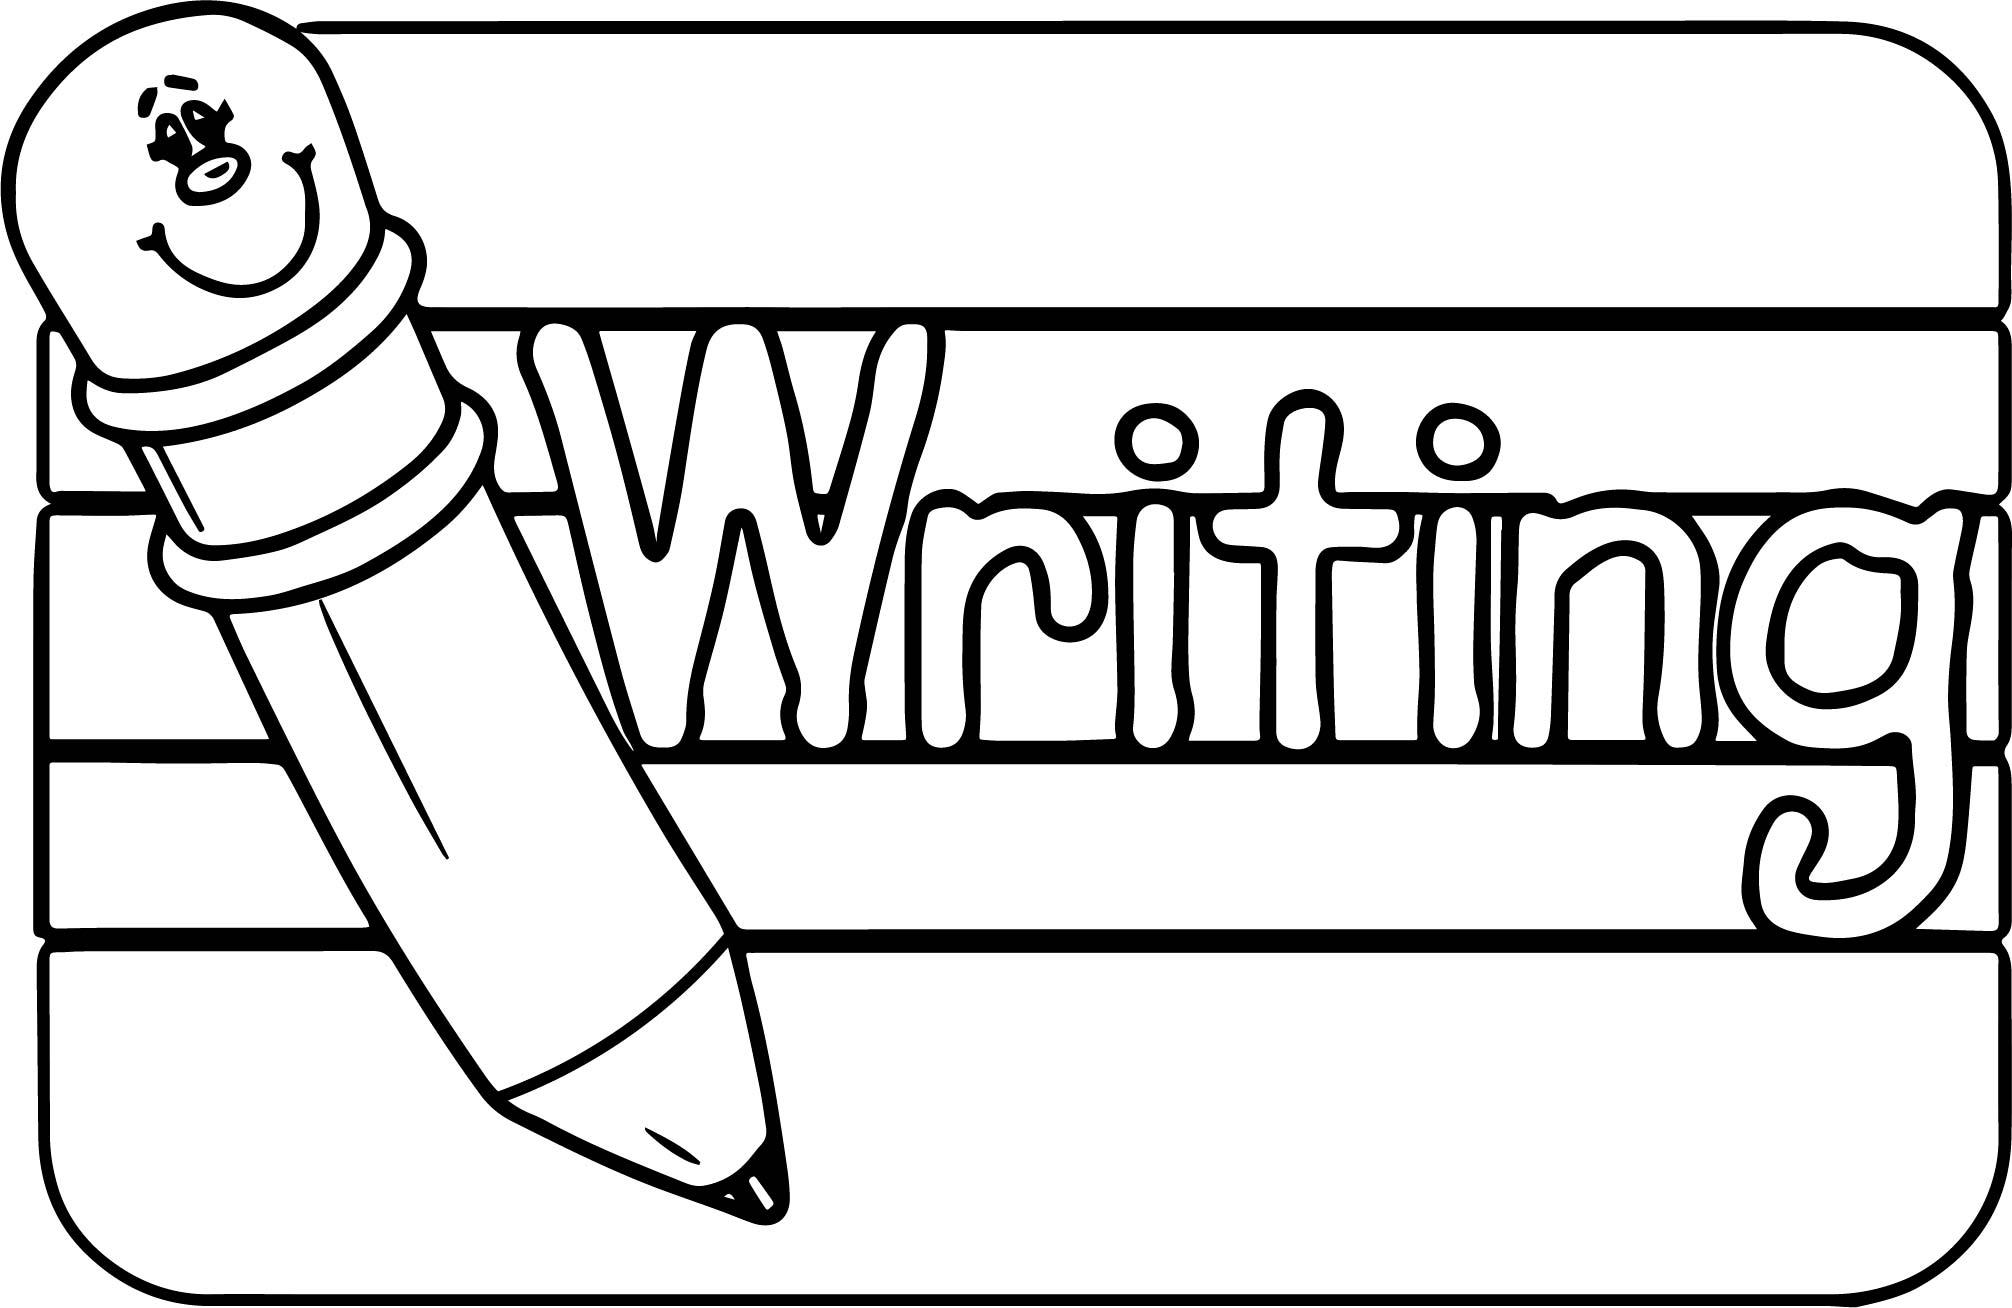 Coloring Pages For Writing : Abc pencil writing text sign coloring page wecoloringpage